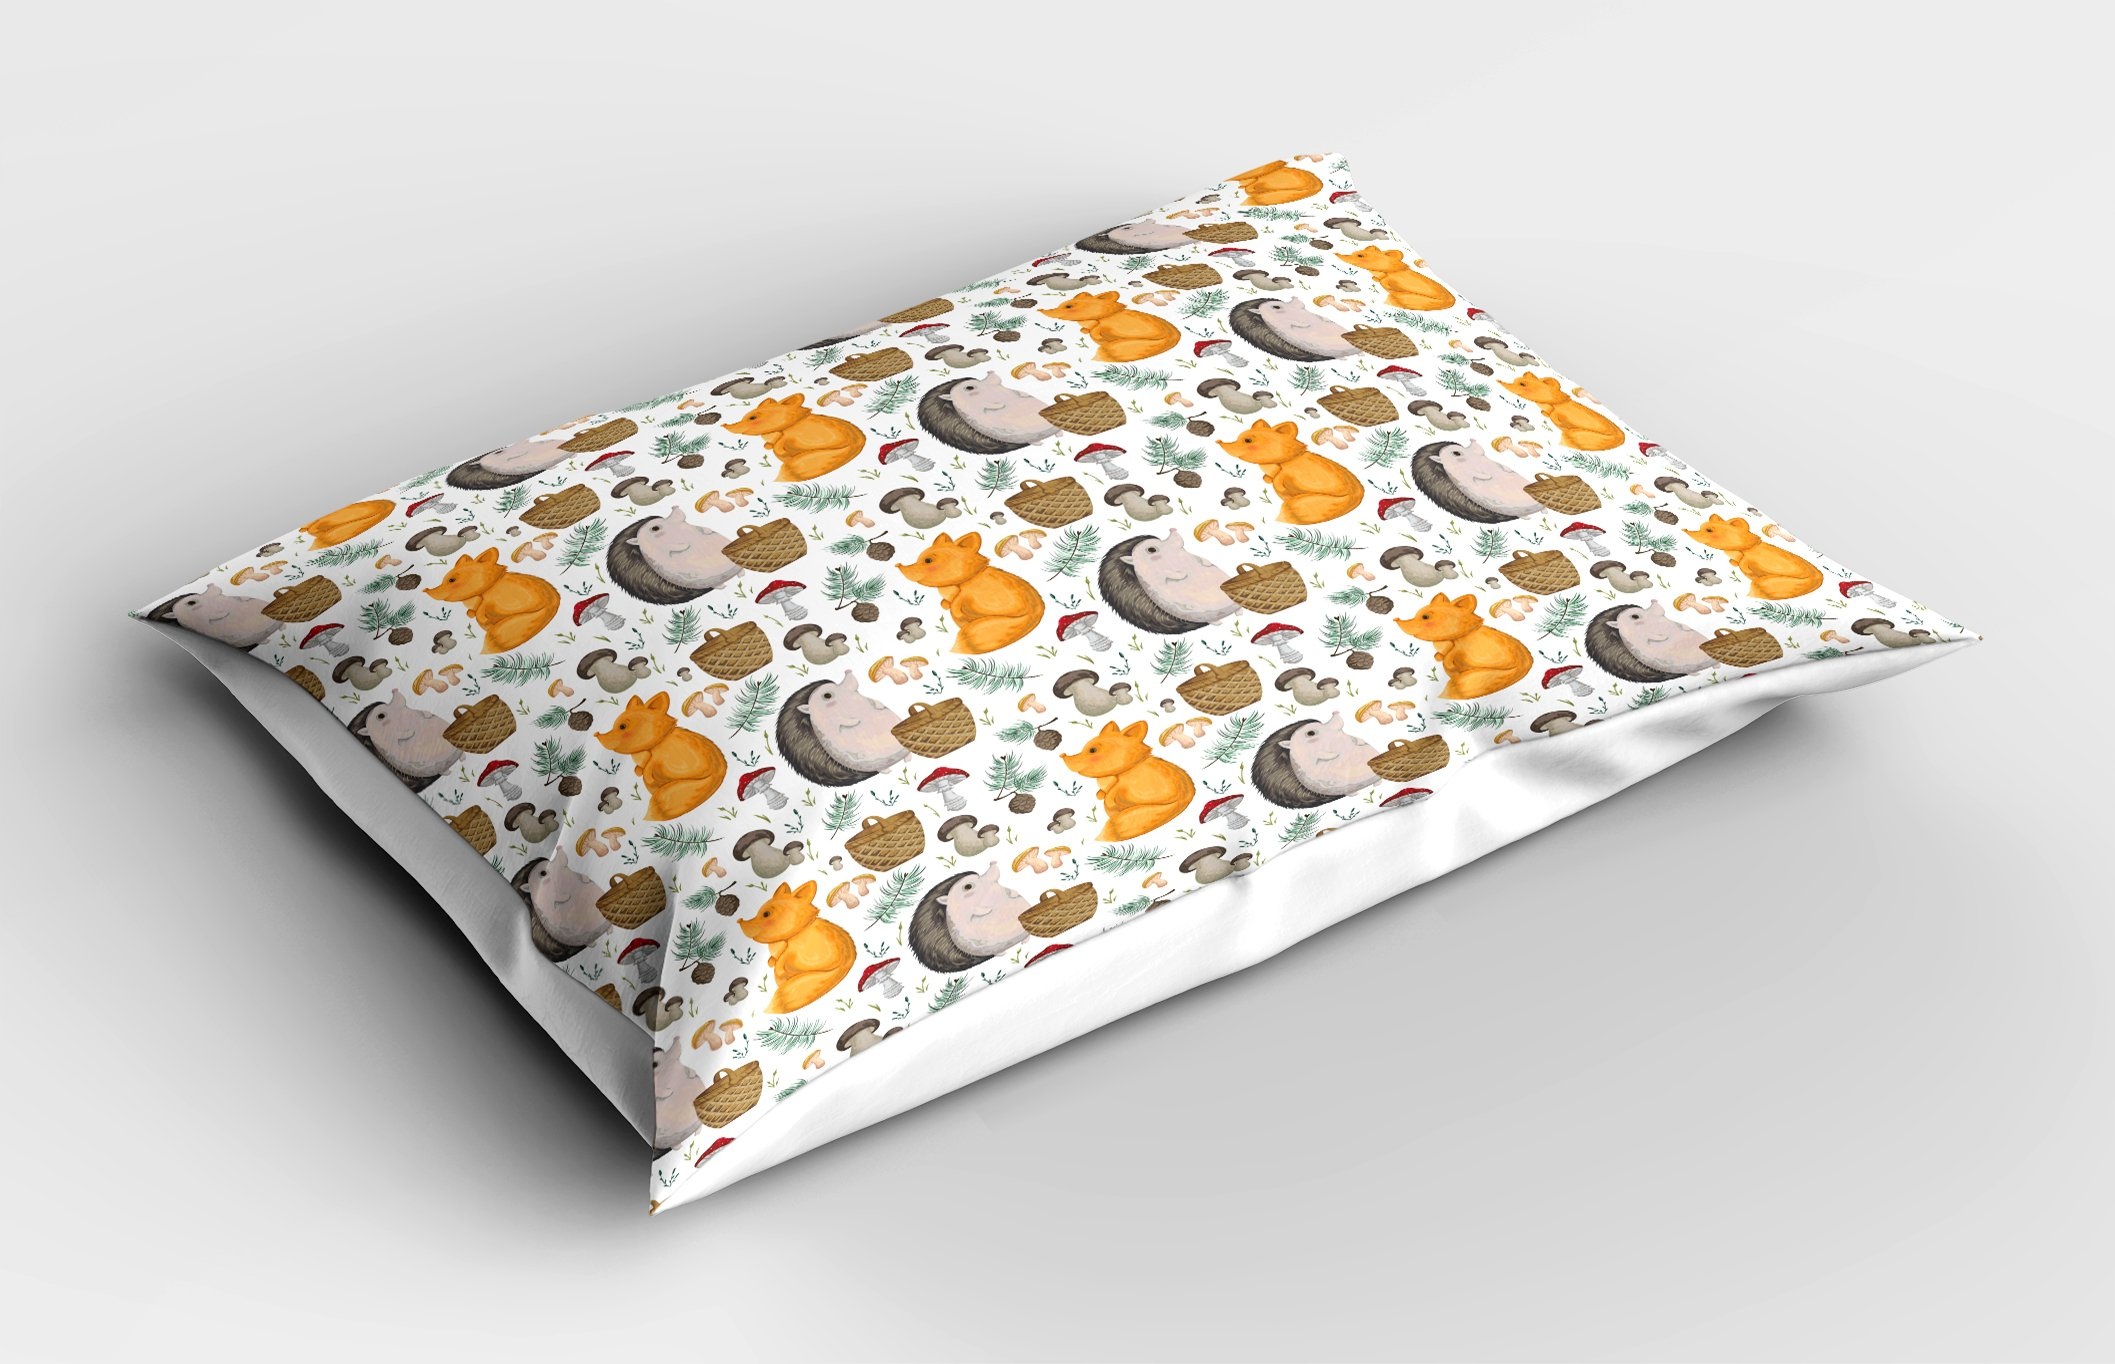 Ambesonne Hedgehog Pillow Sham, Pattern with Hedgehog Fox Basket Mushrooms Cones and Spruce Life in The Woods, Decorative Standard King Size Printed Pillowcase, 36 X 20 inches, Multicolor by Ambesonne (Image #2)